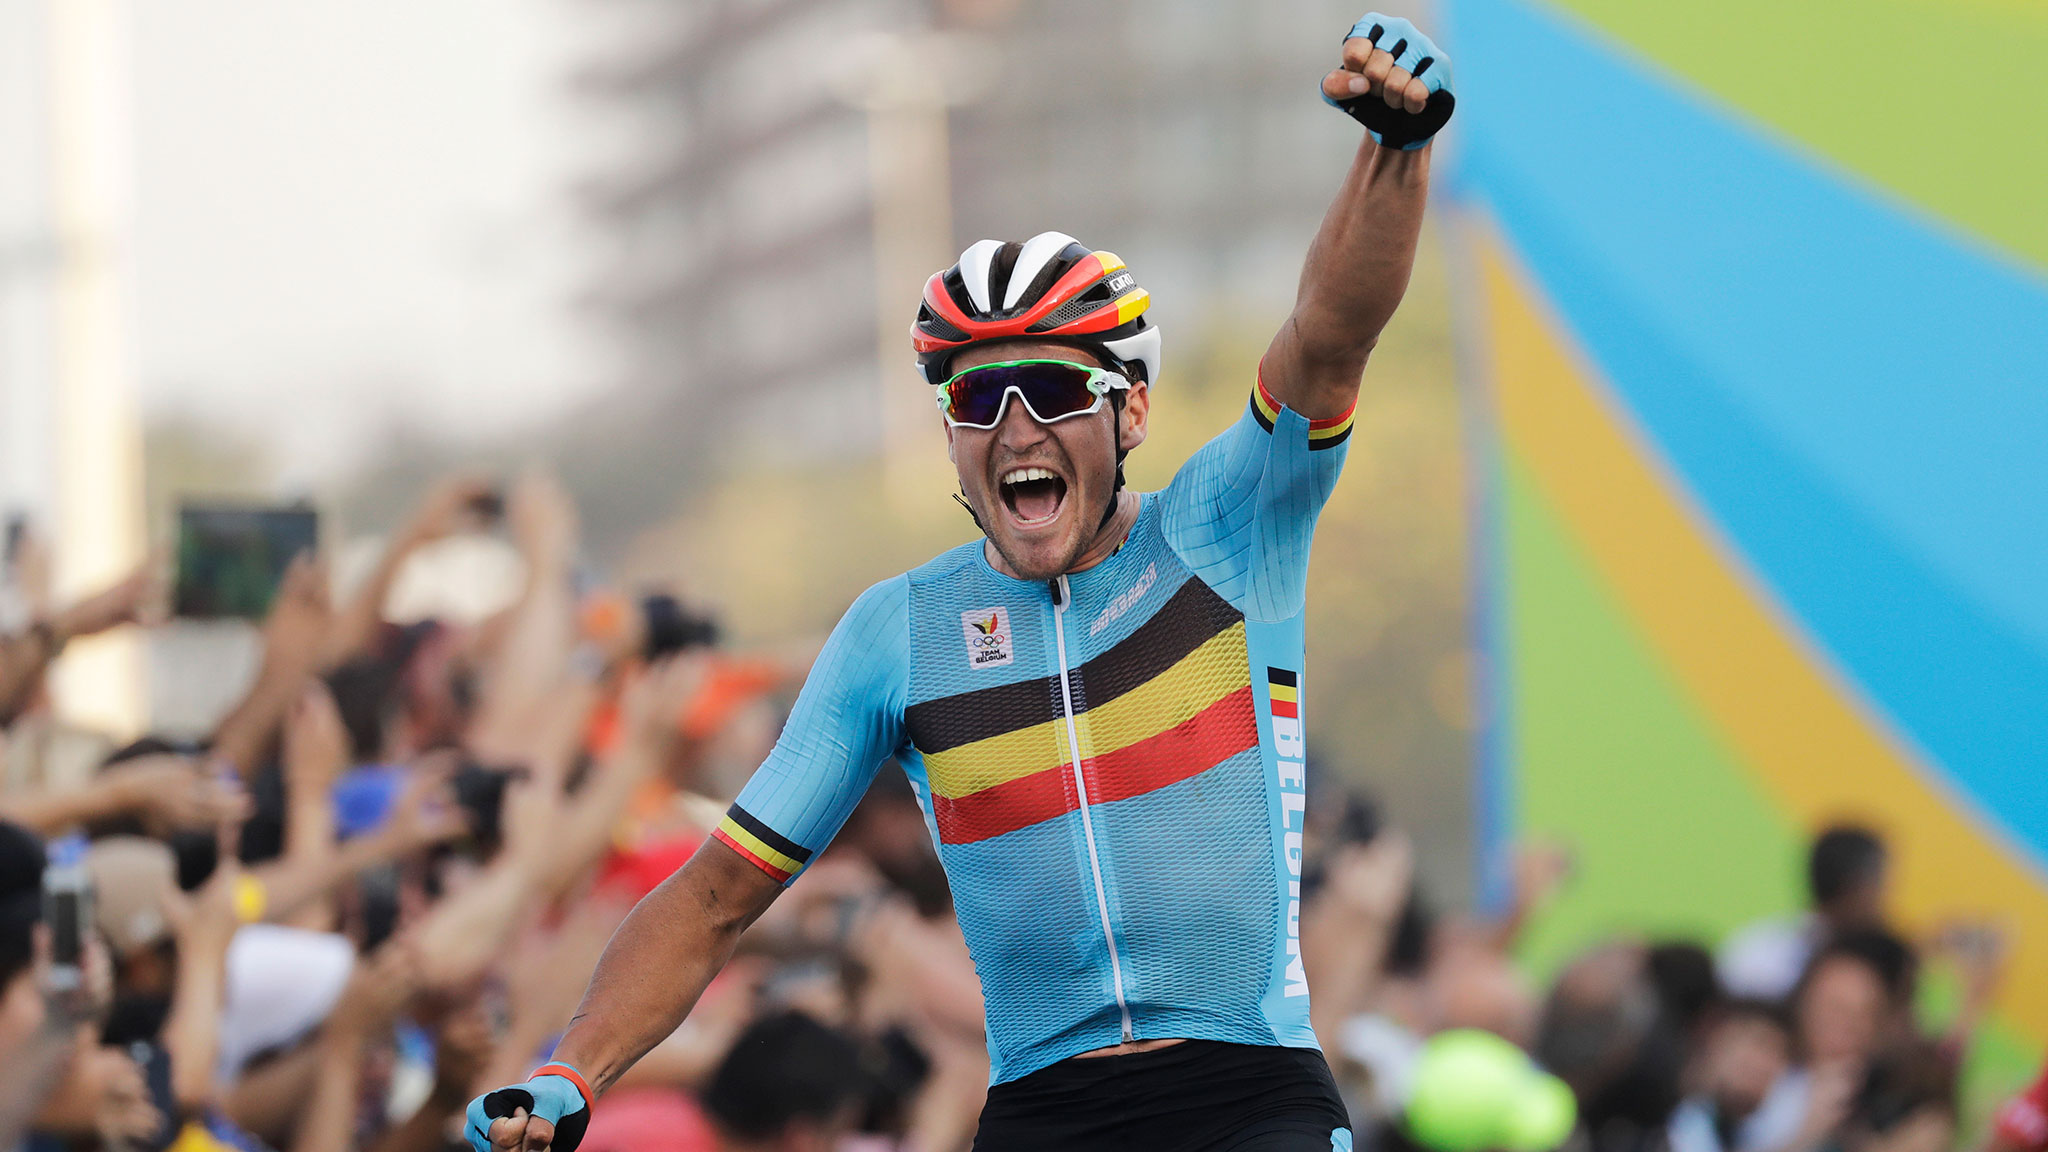 Rio Olympics 2016  Belgian wins brutal men s cycling road race ... f32d10b9f